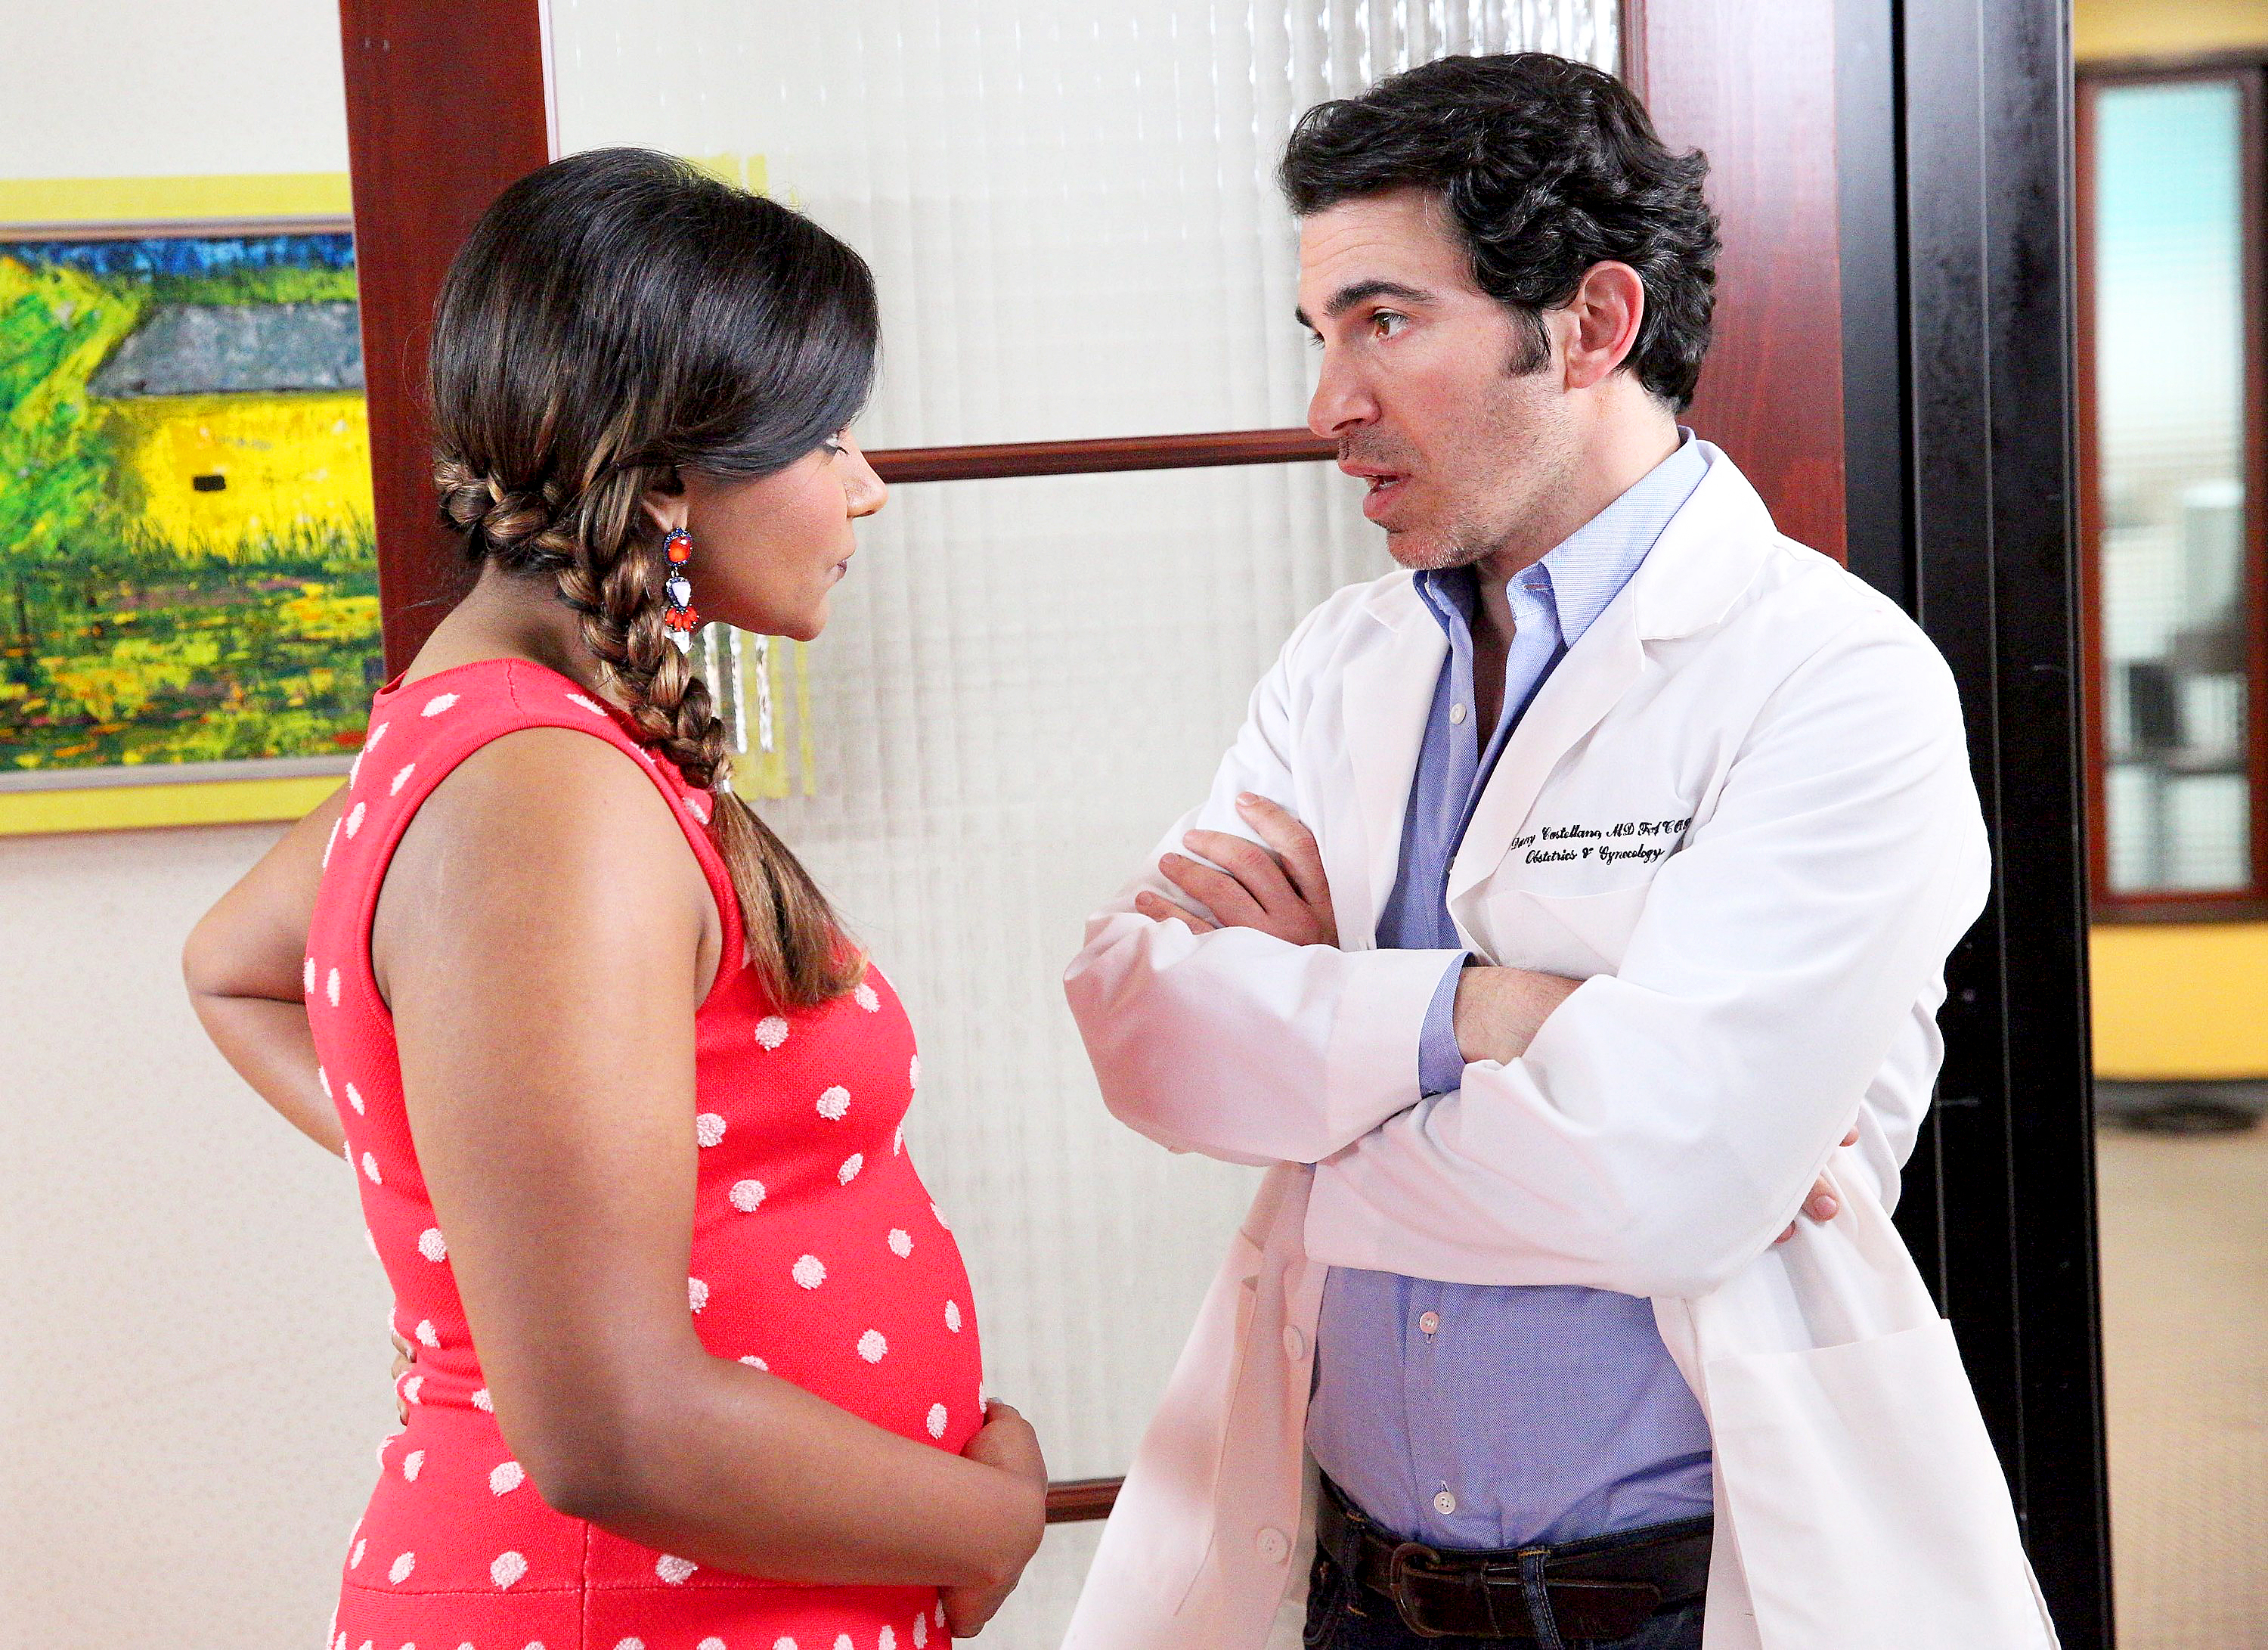 Mindy Kaling and Chris Messina The Mindy Project